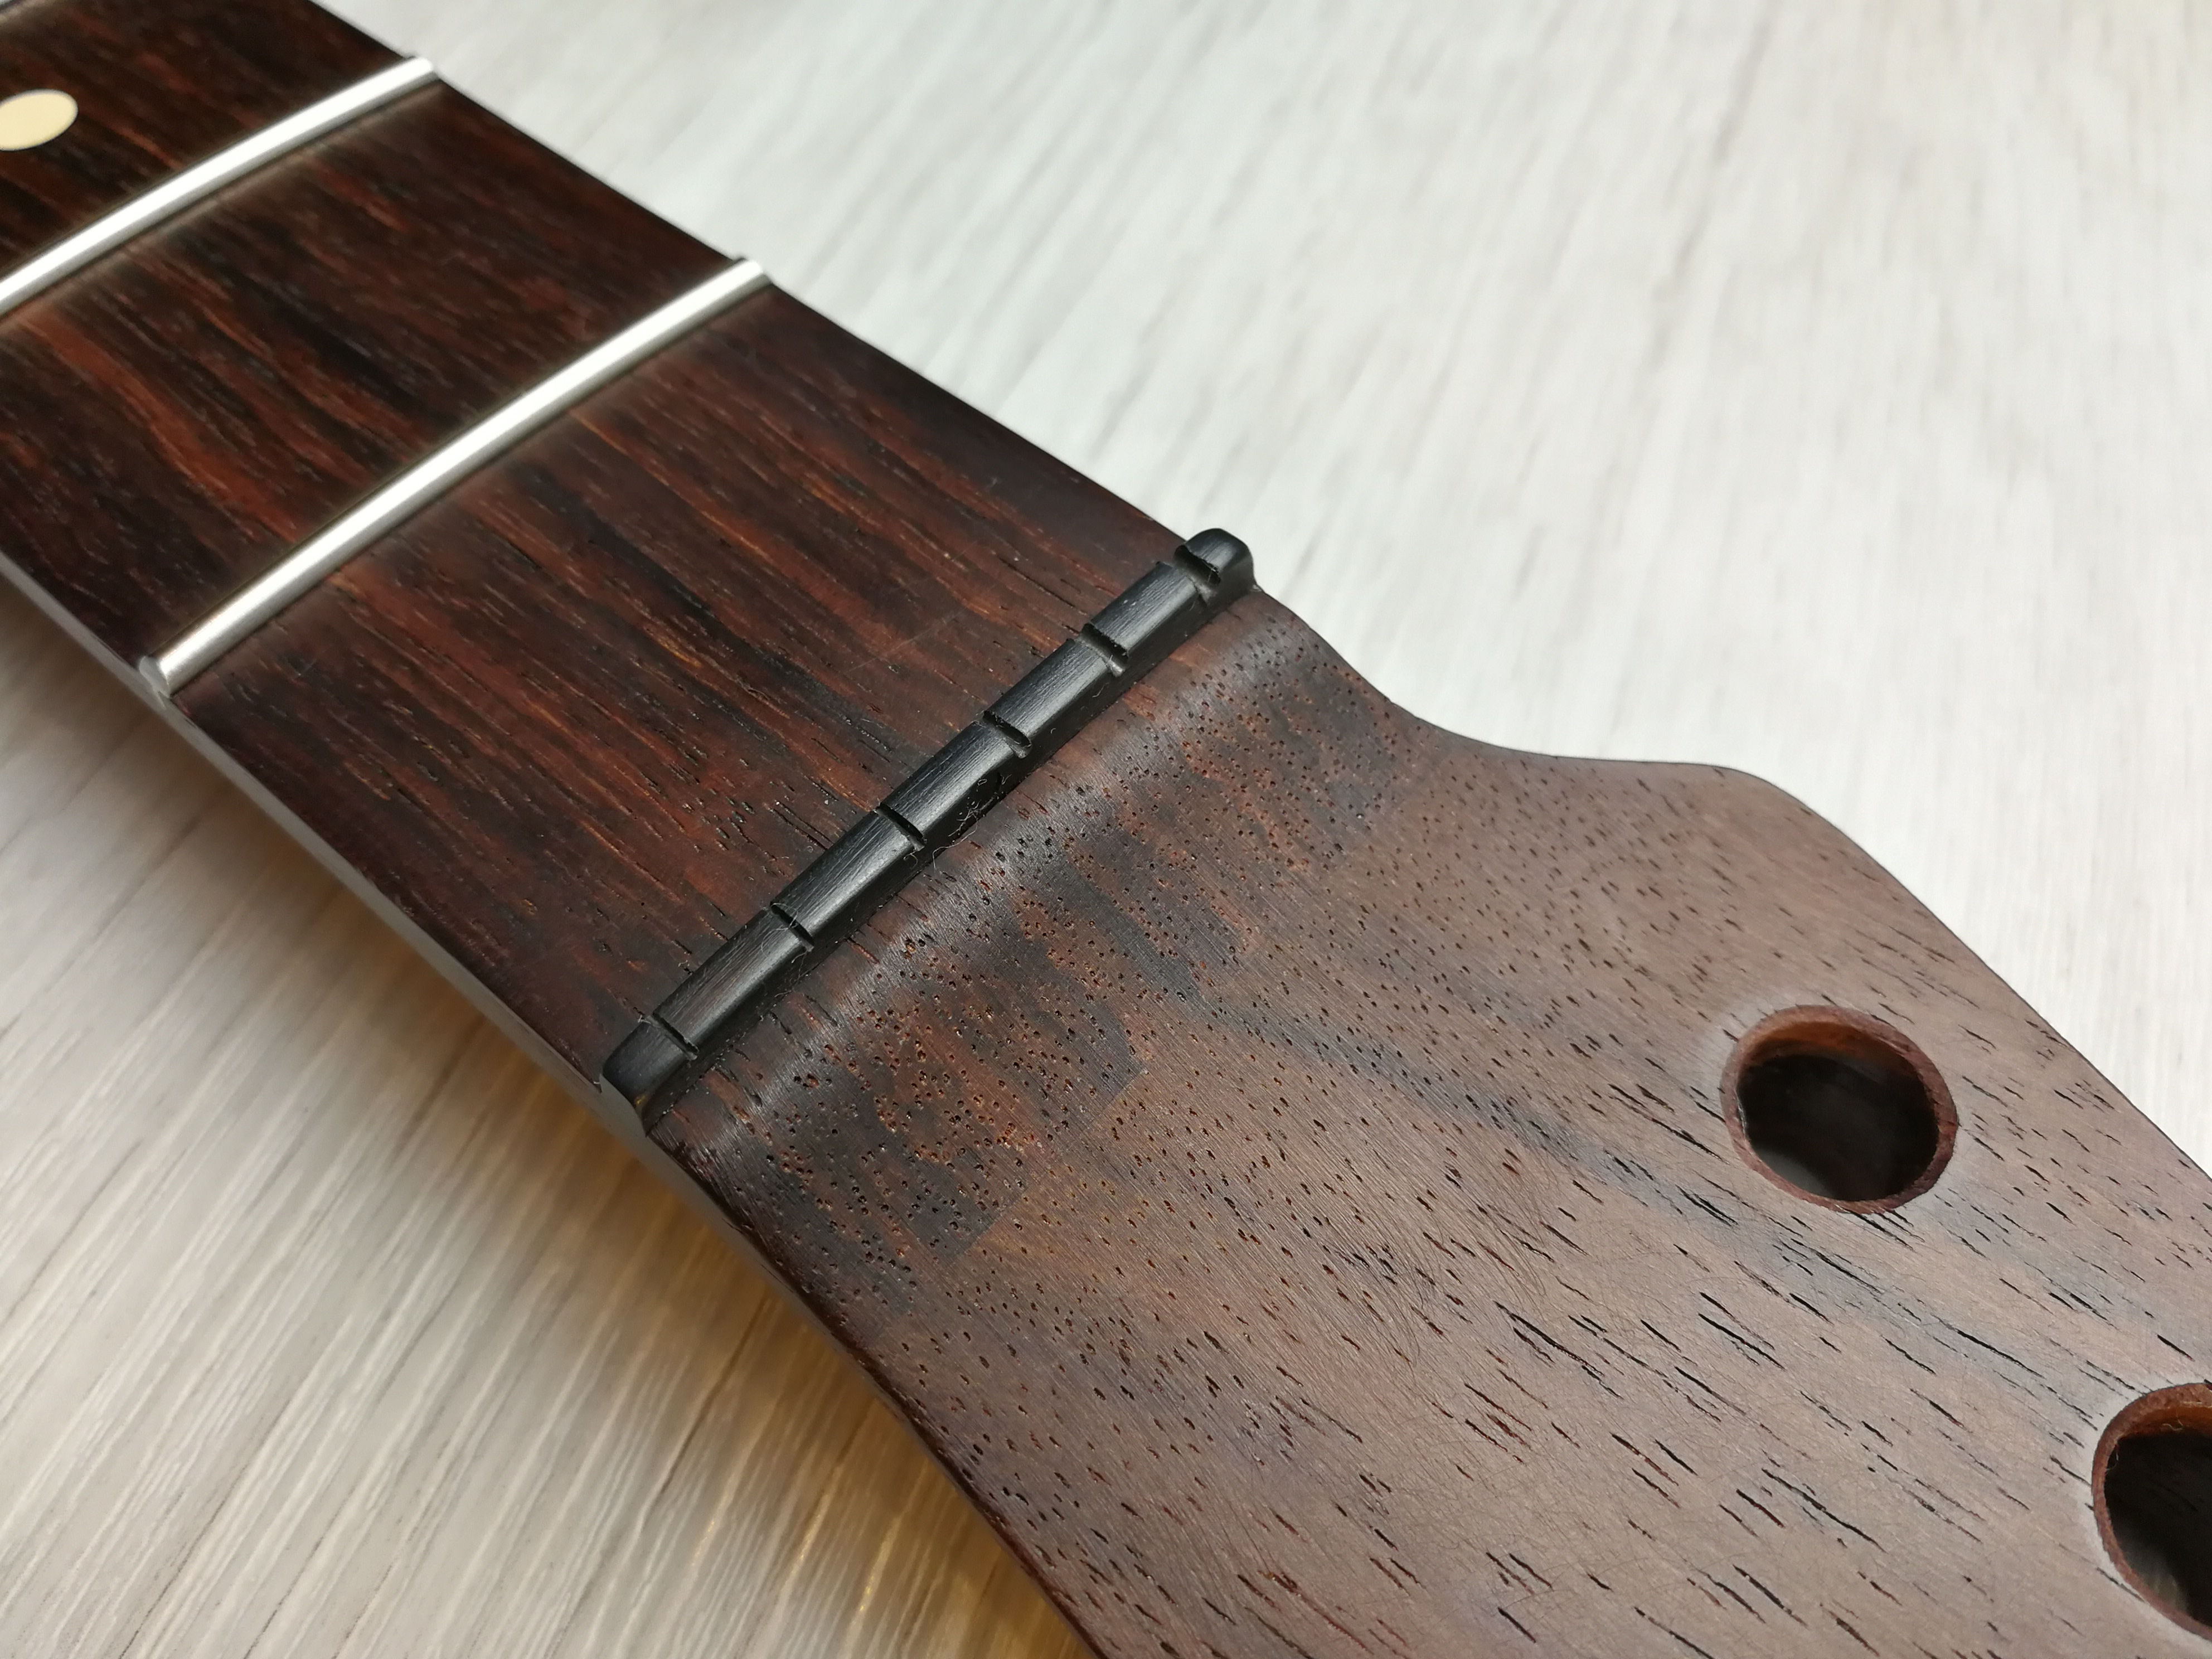 Pictures and images Warmoth Telecaster Neck - Audiofanzine